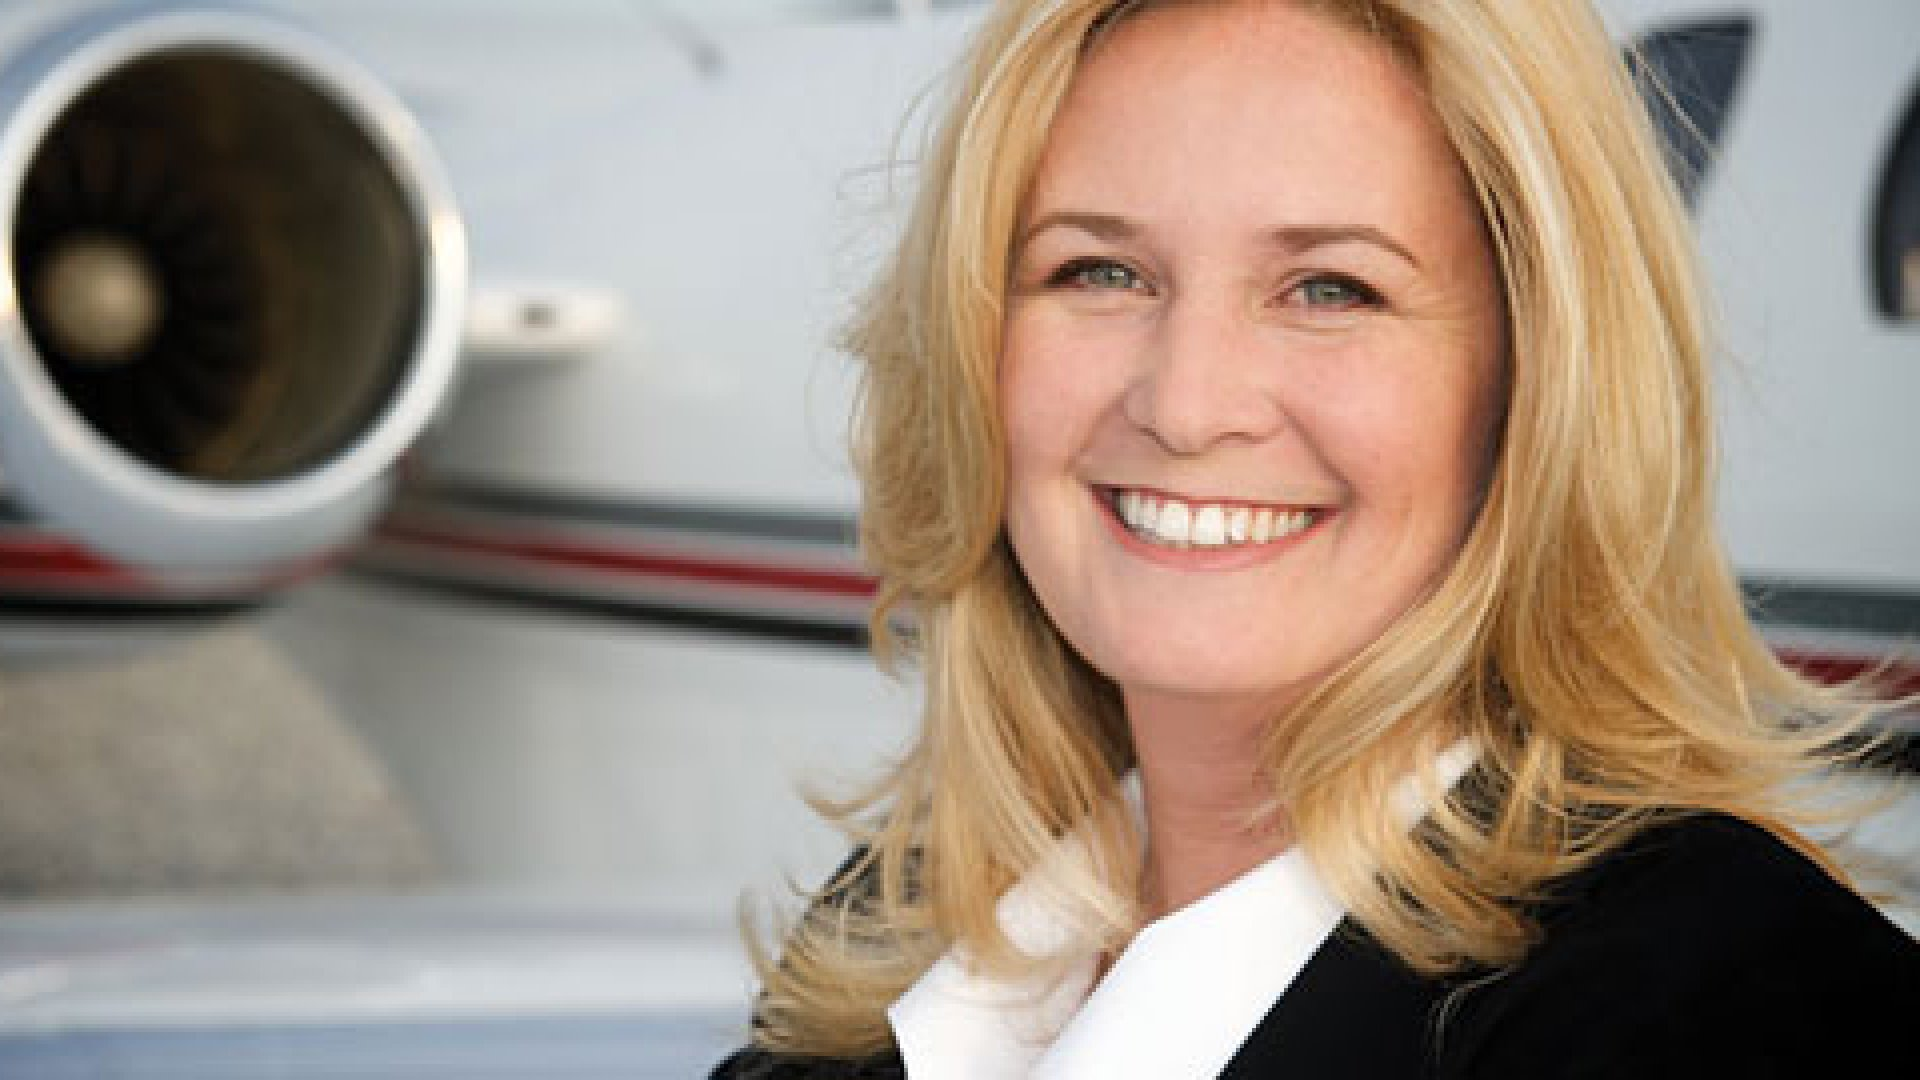 Desert Jet, founded by Denise Wilson, has 600 clients and counting.